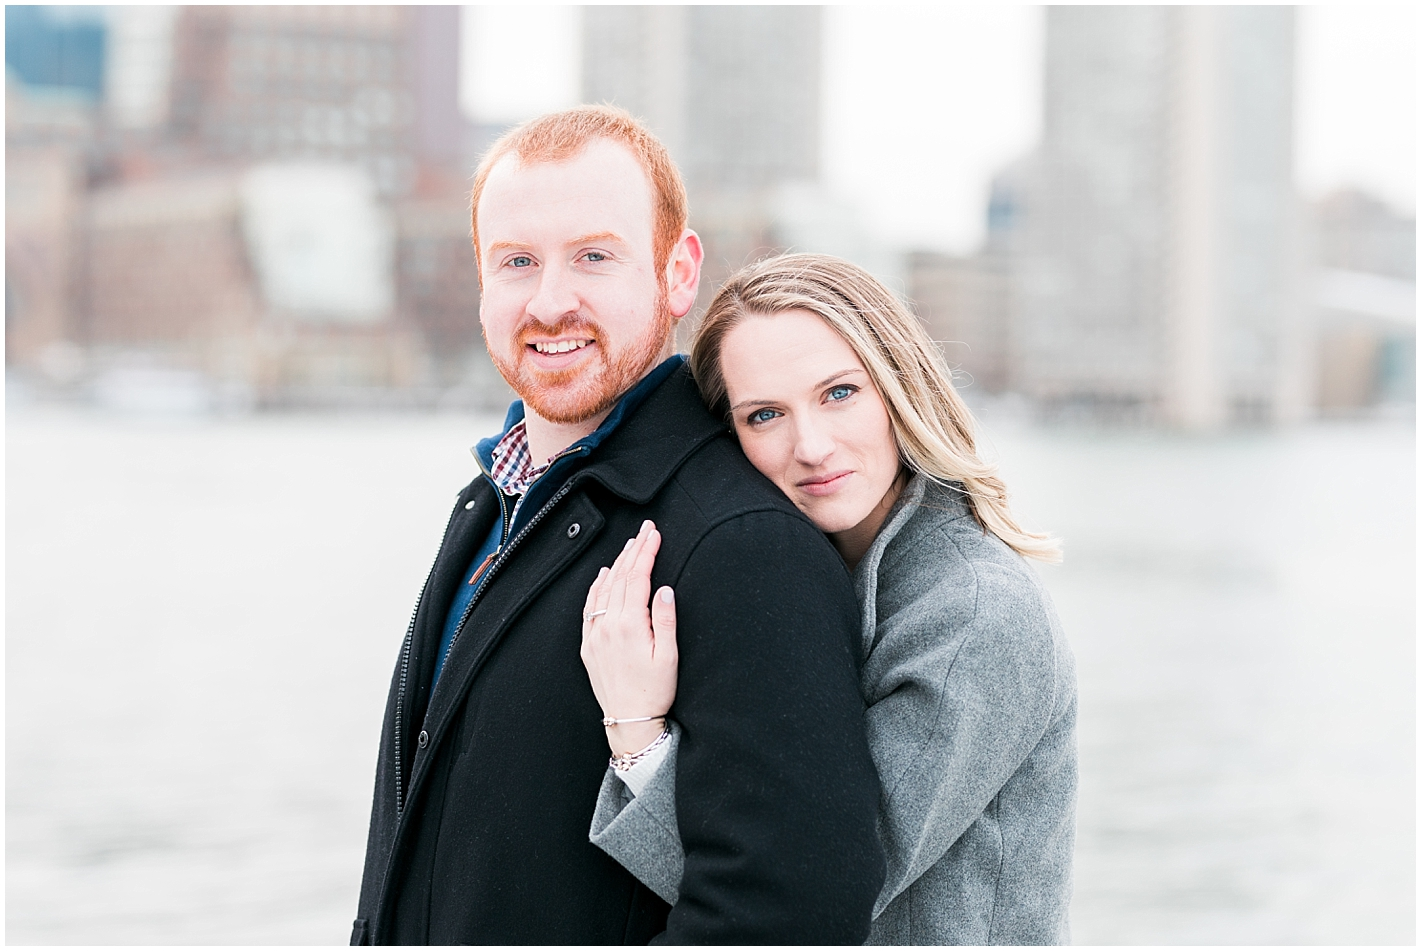 Boston Couples Photo Shoot By Alyssa Parker Photography